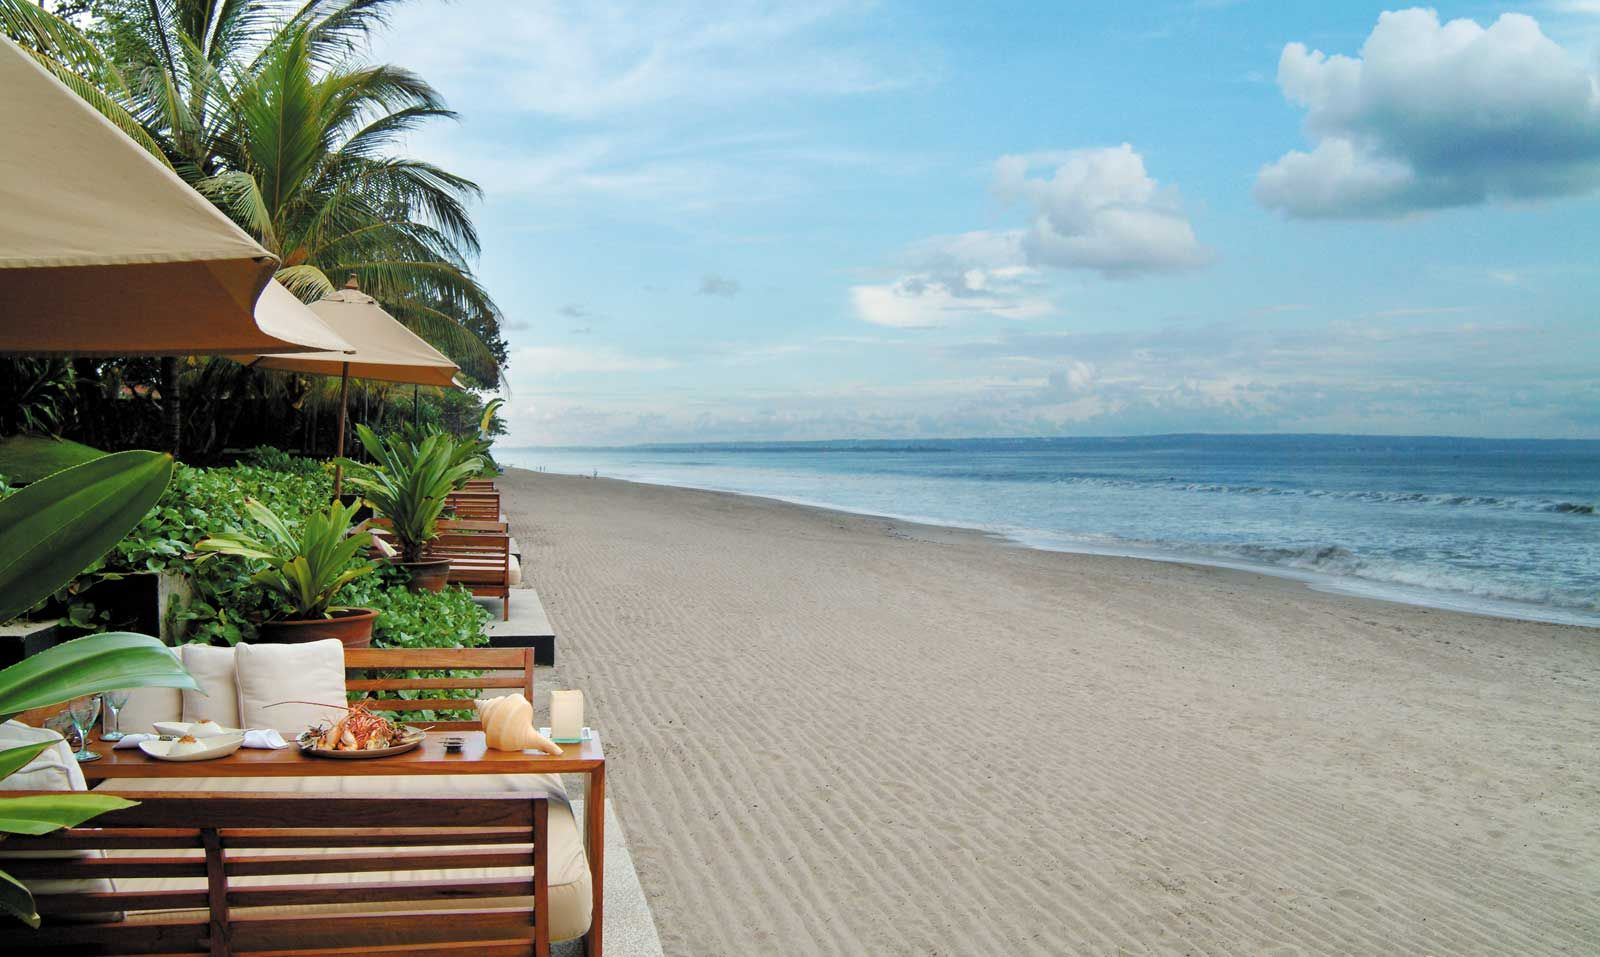 The Legian Bali A Boutique Seaside Hideaway On Buzzy Seminyak Beach Made Up Of Stylish Suites And All Frills Villas Hotel Is Tale Two